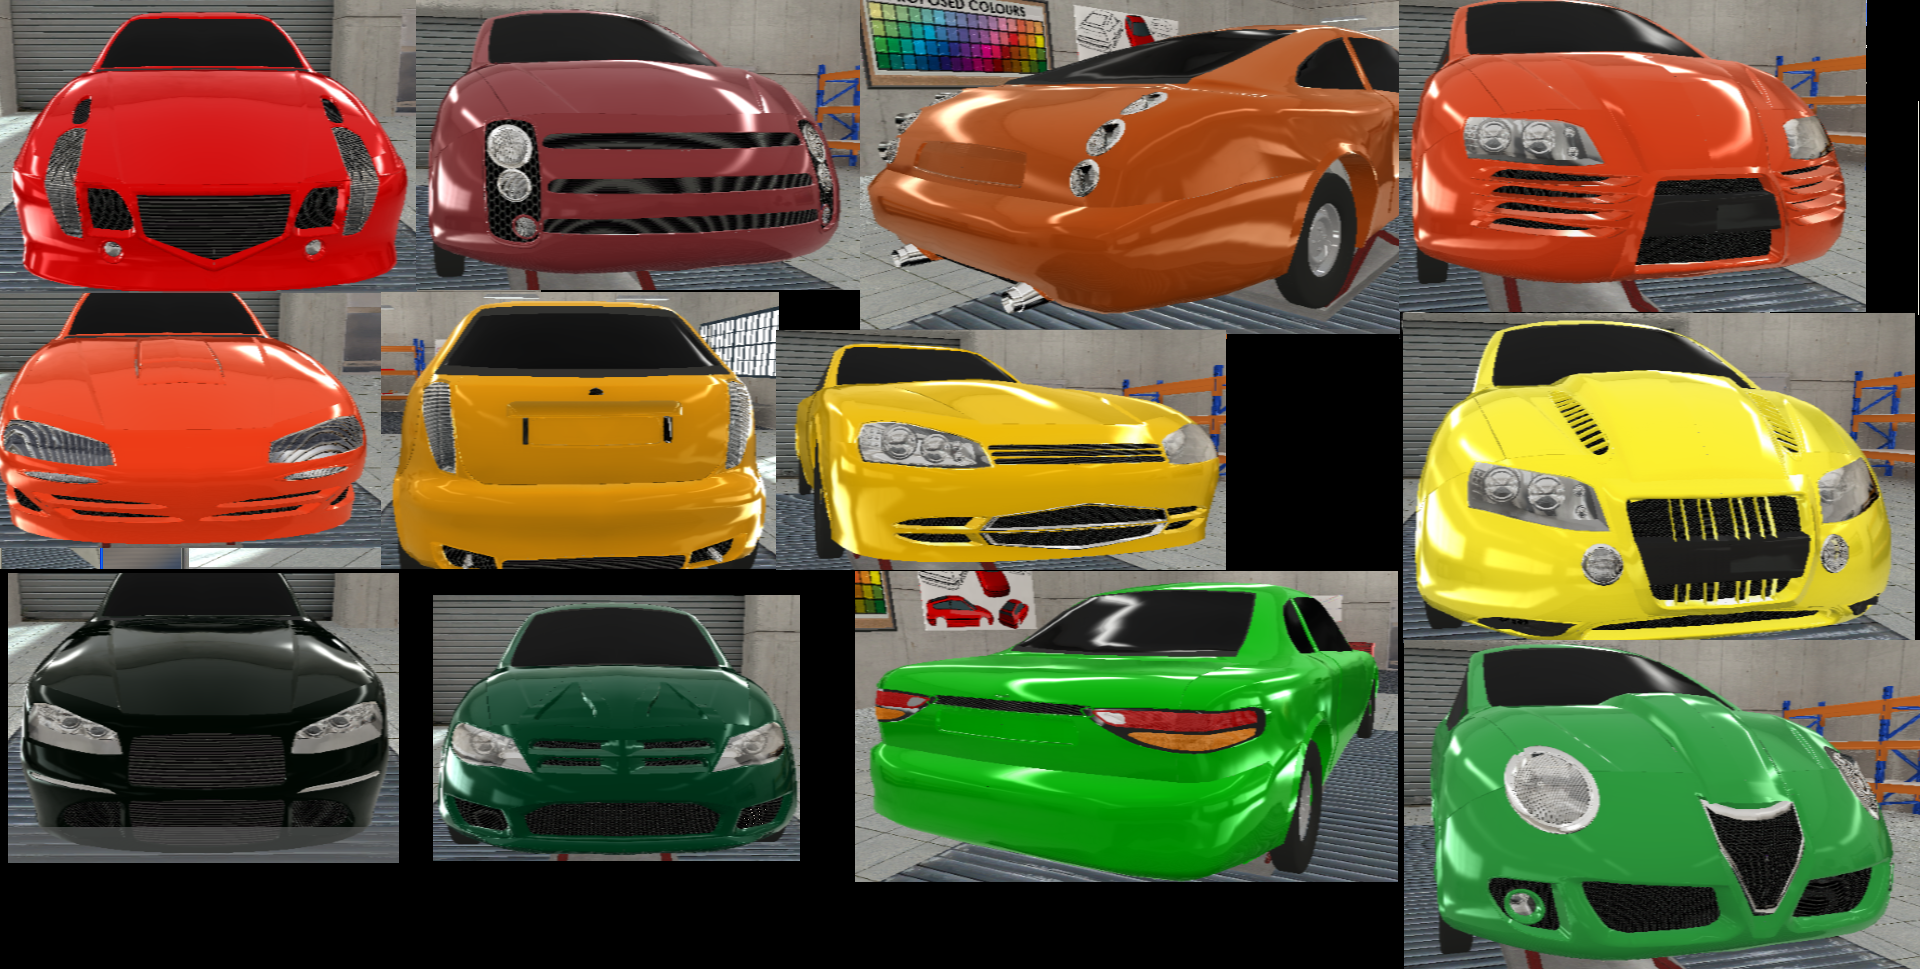 More Cars by Beta Tester Kubboz image - Automation: The Car Company